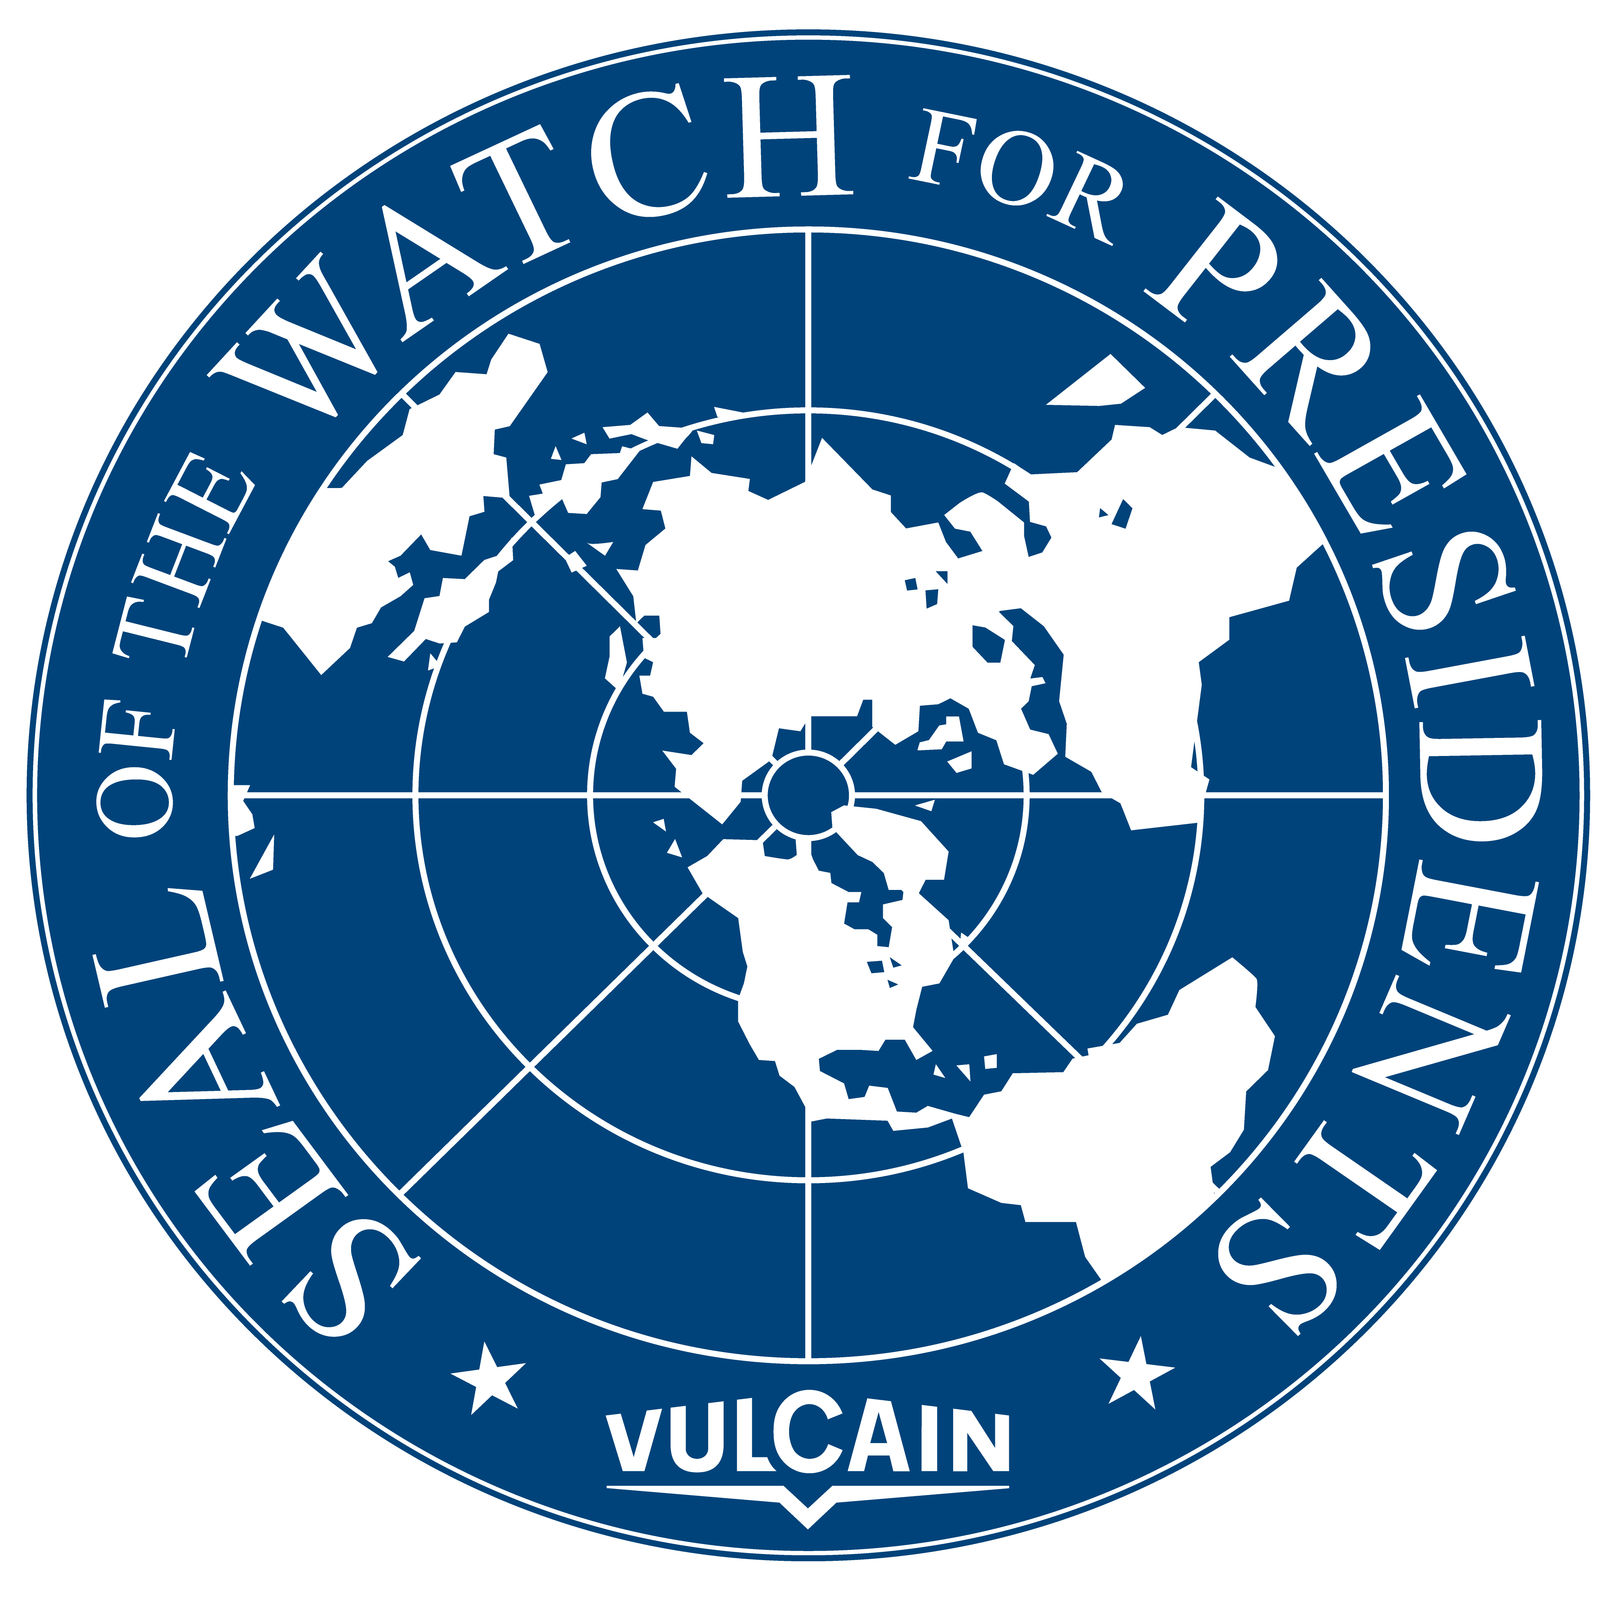 Vulcain Watches (Image 1)